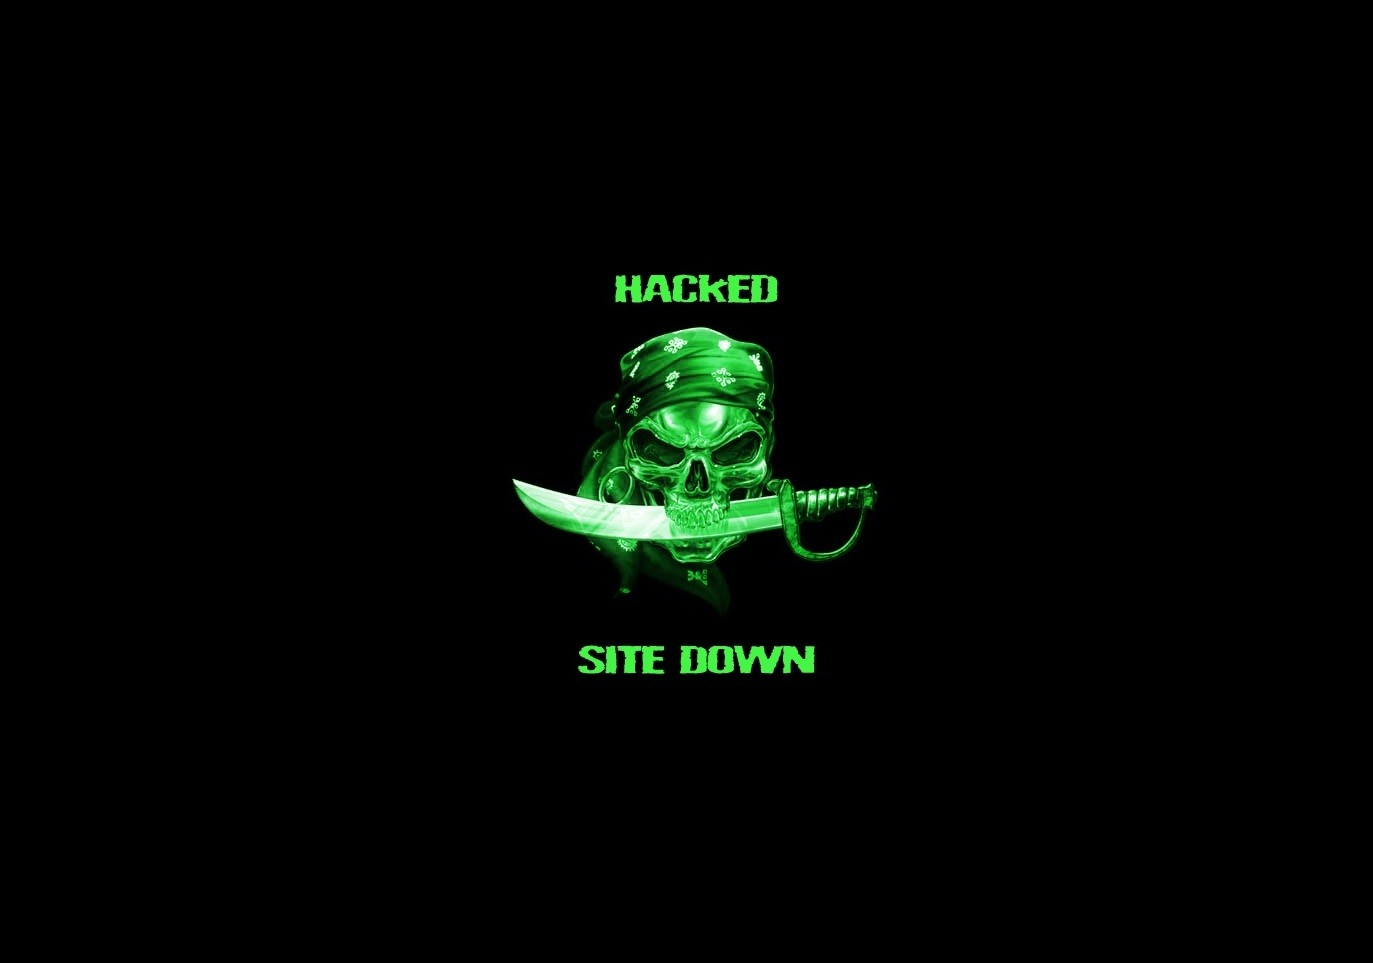 Animated Hacking Wallpaper Technology   hacker wallpaper 1373x963